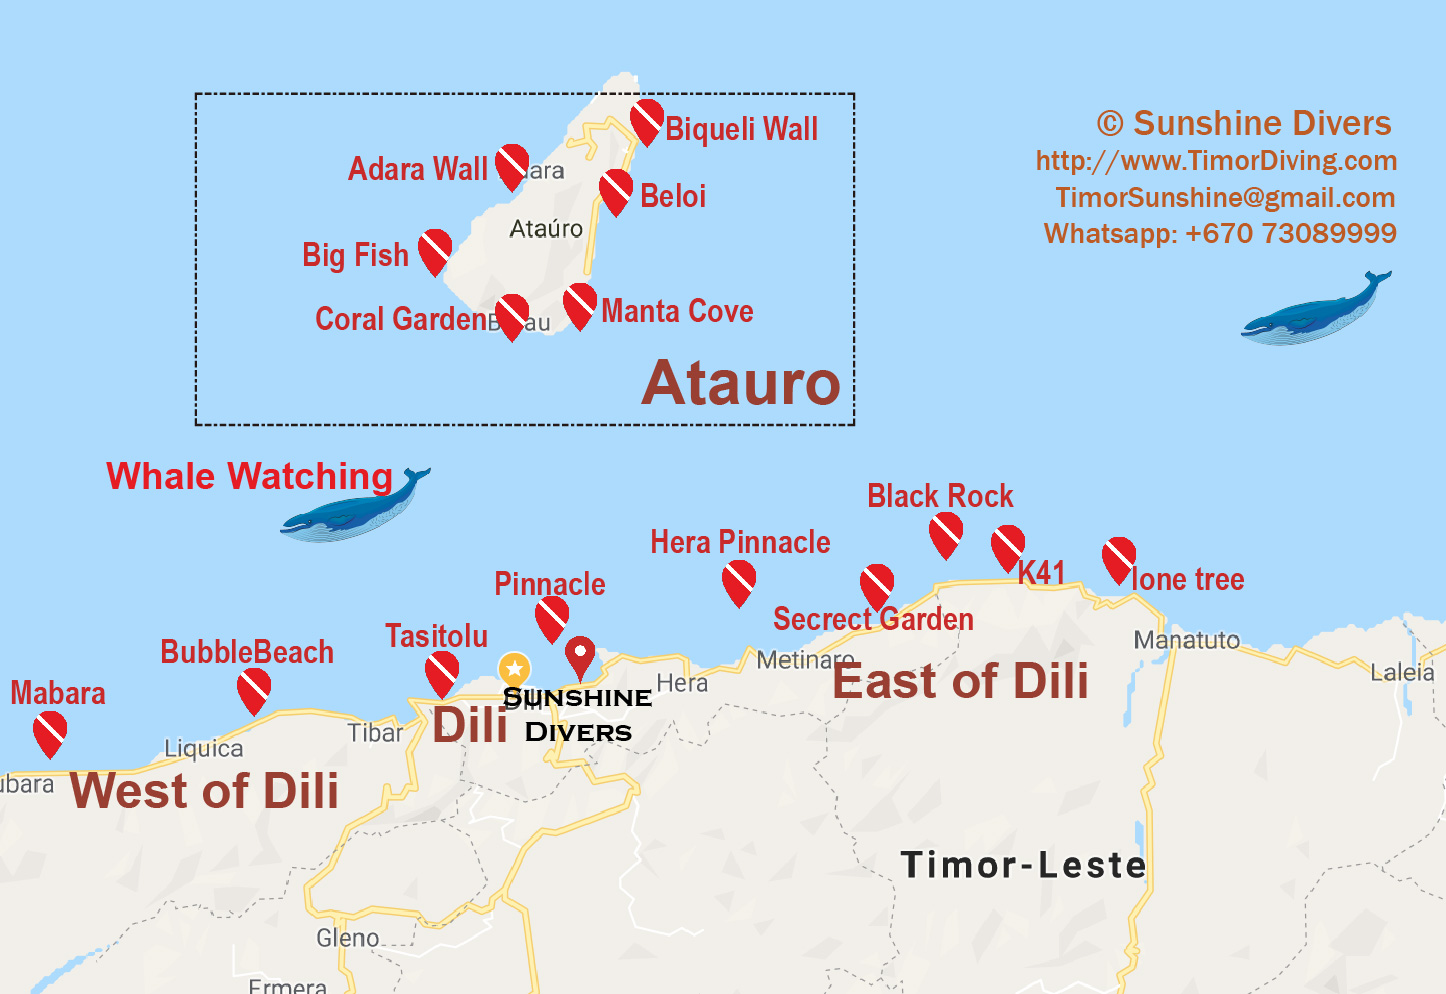 East Timor / Timor-Leste dive site map